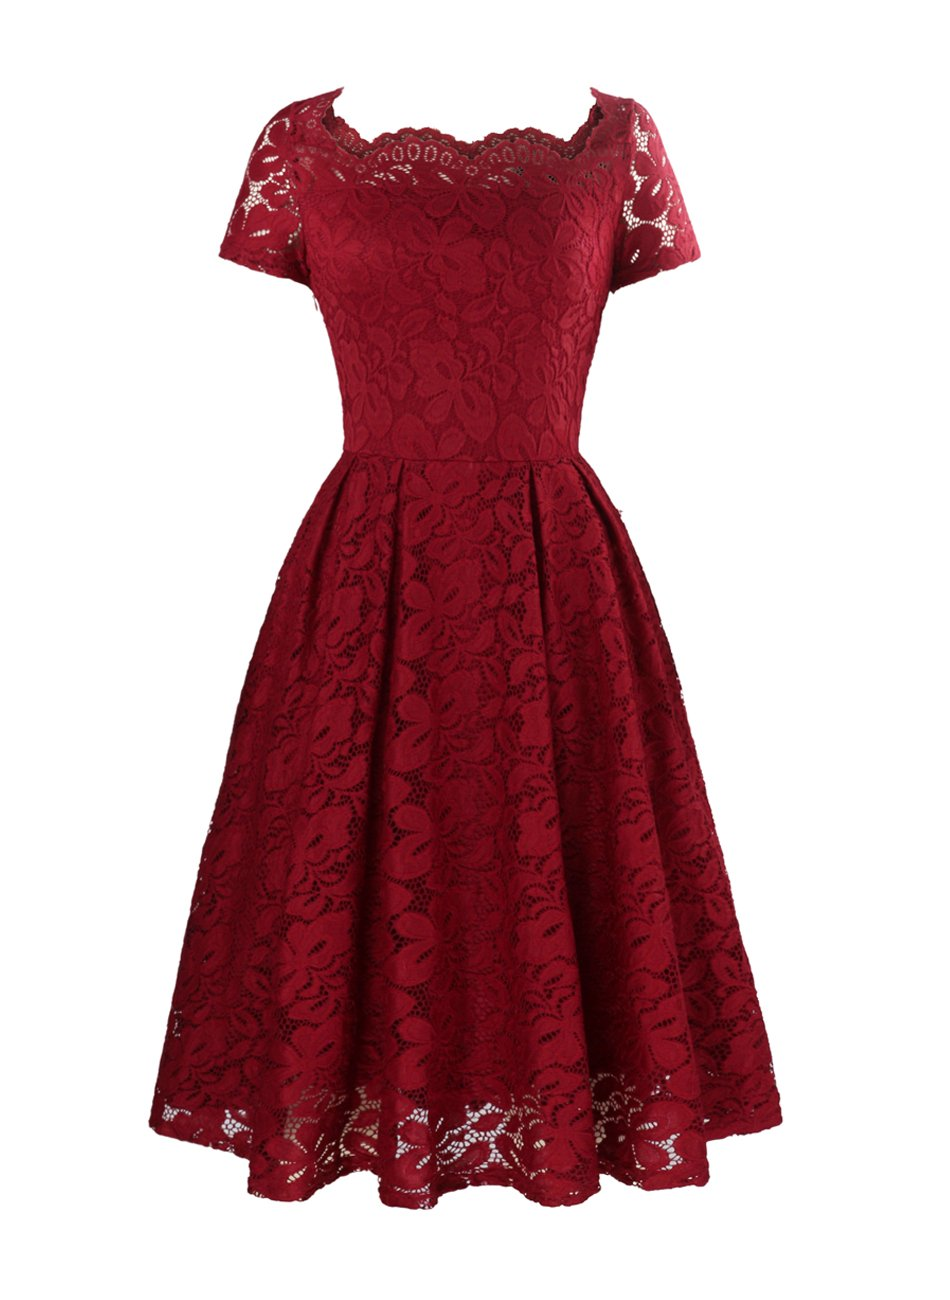 Yanmei Women s Vintage Semi Formal Dress for Evening Lace Dress with Short  Sleeve Wine Red ... 0c75e19bb